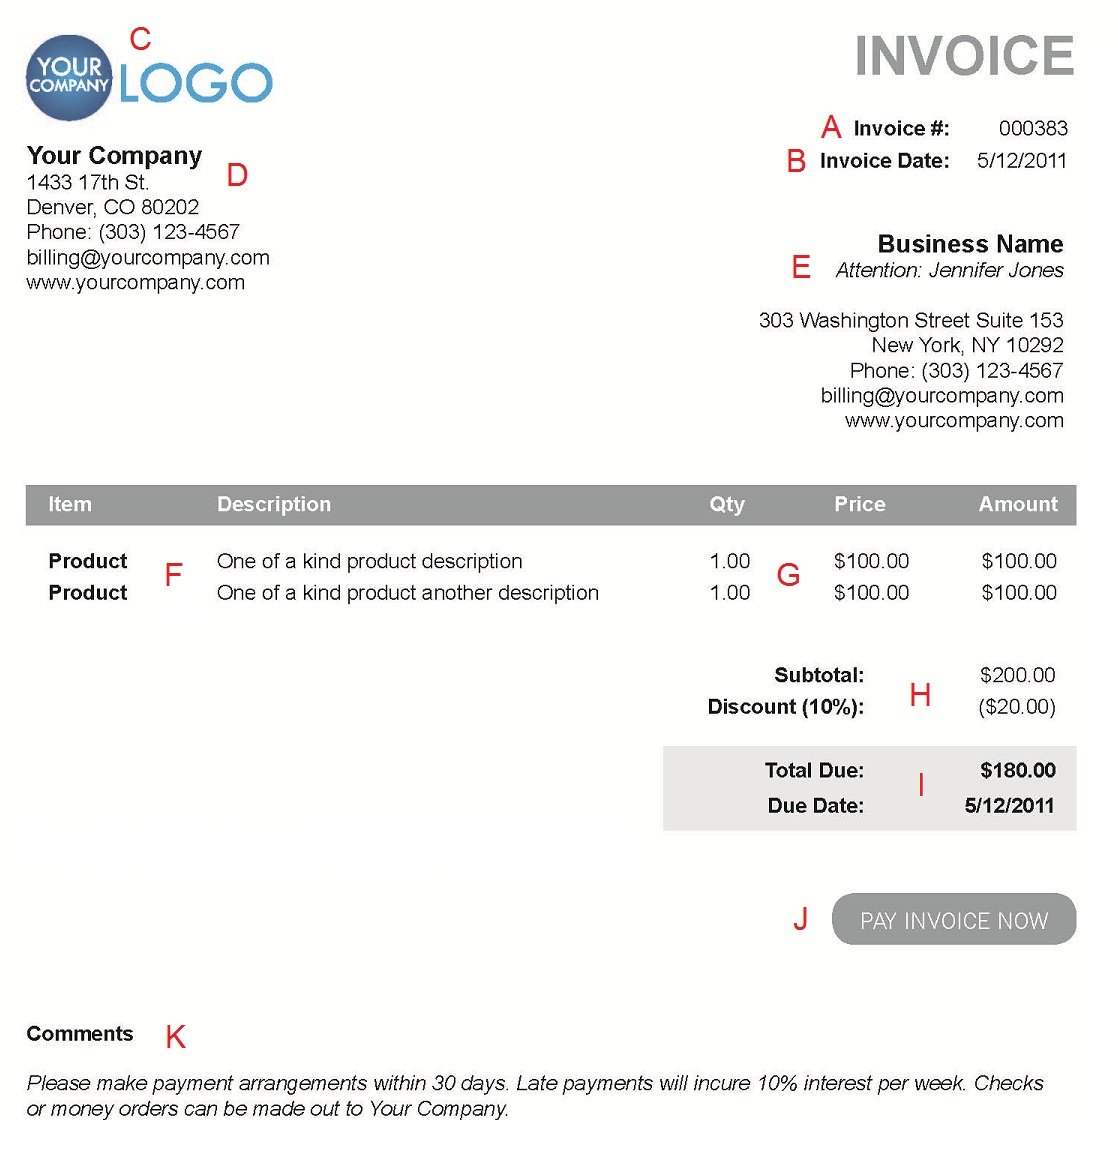 Pigbrotherus  Seductive The  Different Sections Of An Electronic Payment Invoice With Interesting A  With Attractive Free Invoice Creator Also Aynax Invoice In Addition Invoice Home And Free Online Invoice As Well As Invoice Paypal Additionally Free Invoice Template Pdf From Paysimplecom With Pigbrotherus  Interesting The  Different Sections Of An Electronic Payment Invoice With Attractive A  And Seductive Free Invoice Creator Also Aynax Invoice In Addition Invoice Home From Paysimplecom